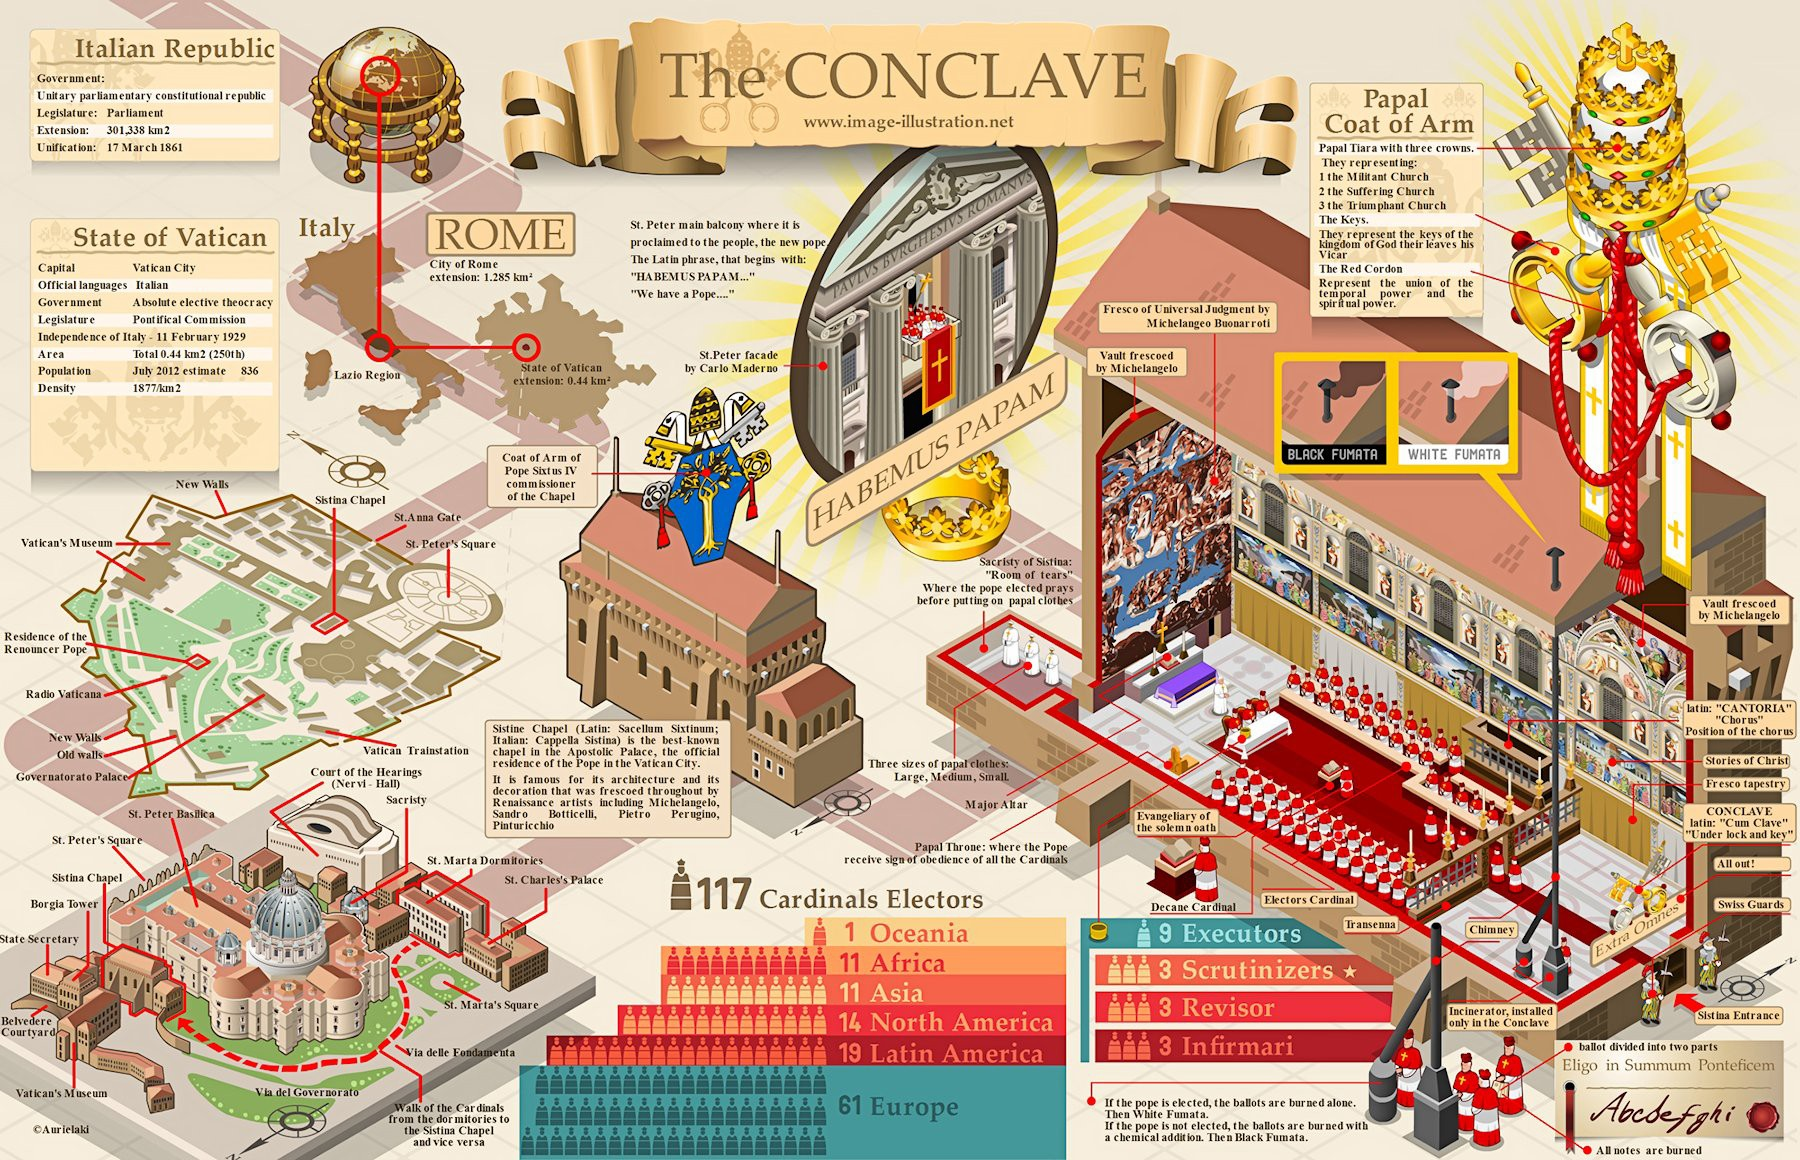 00 Infographic. The Conclave. 12.03.13